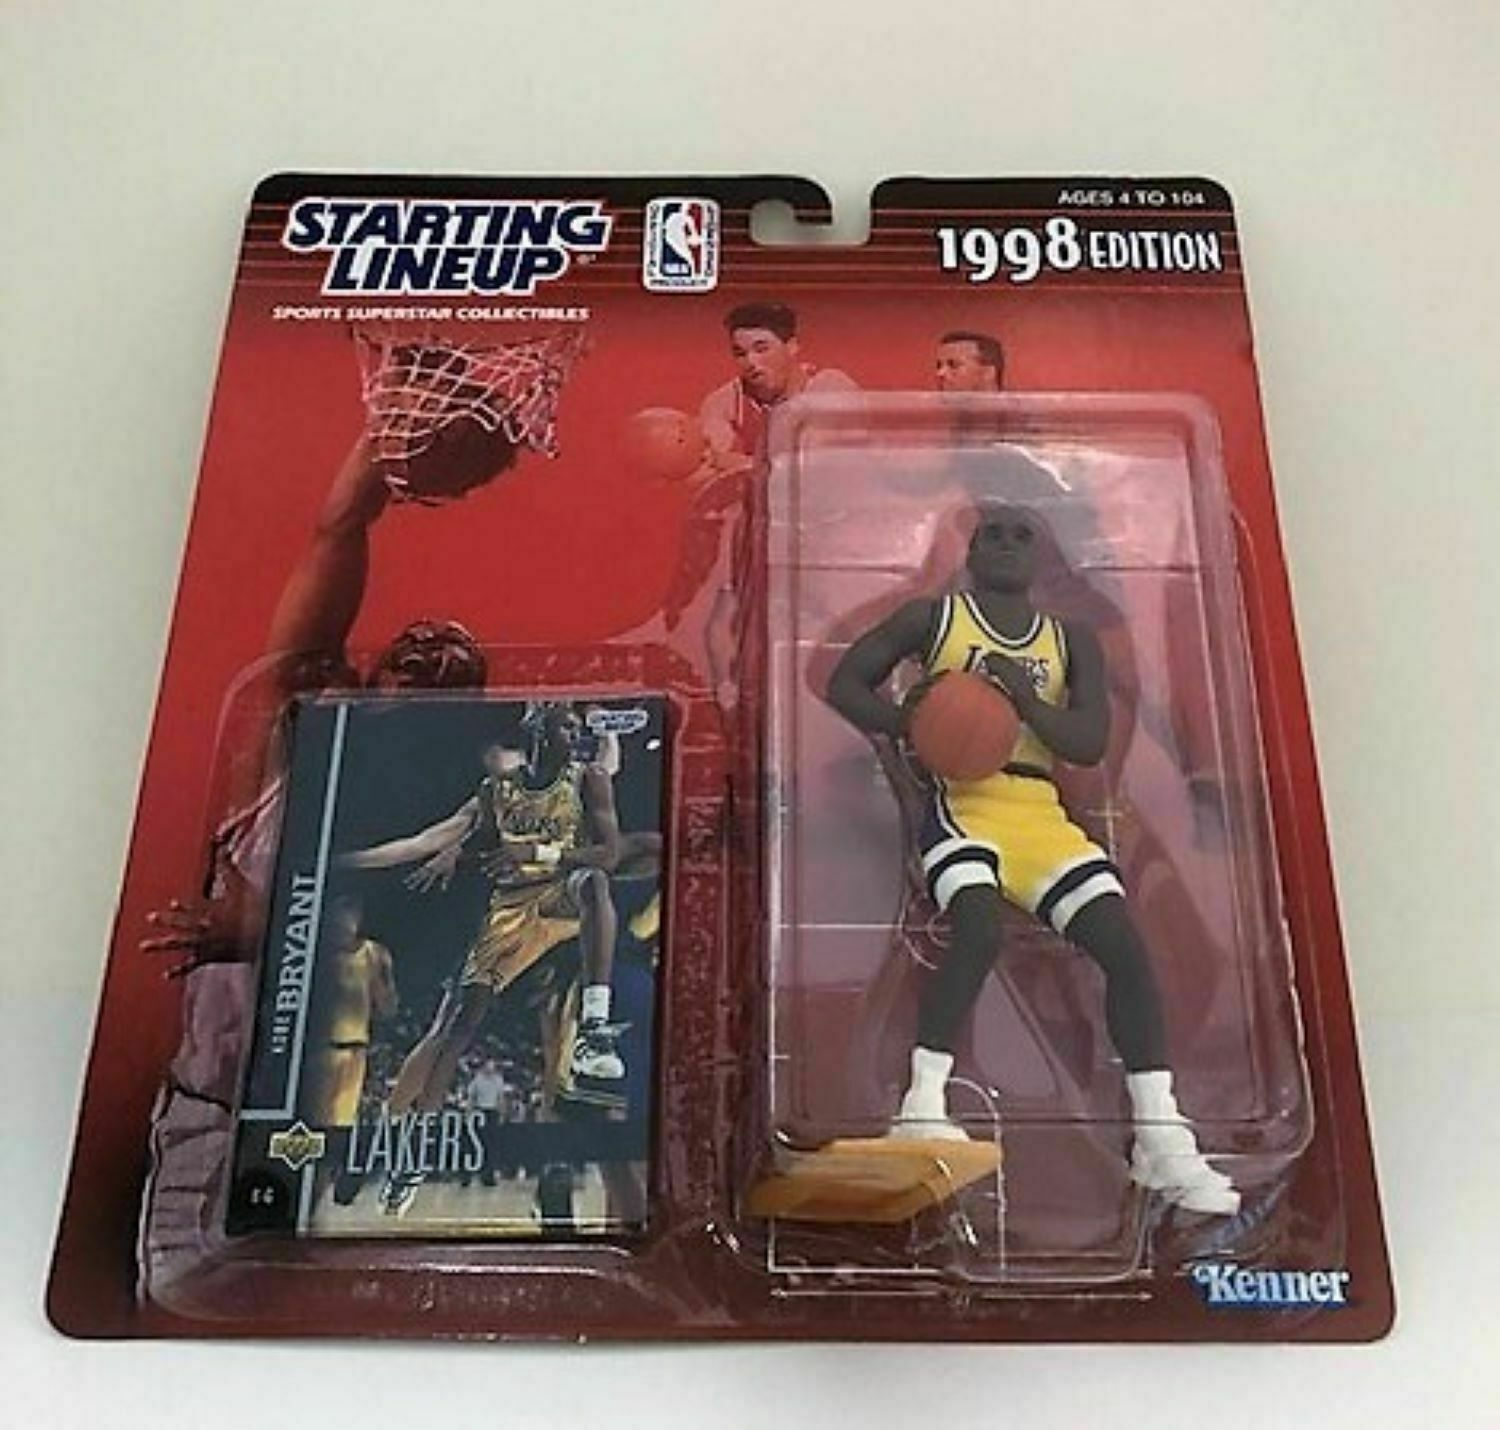 Lakers Unopened Original 1998 Edition Starting Lineup Figure Kobe Bryant L.A